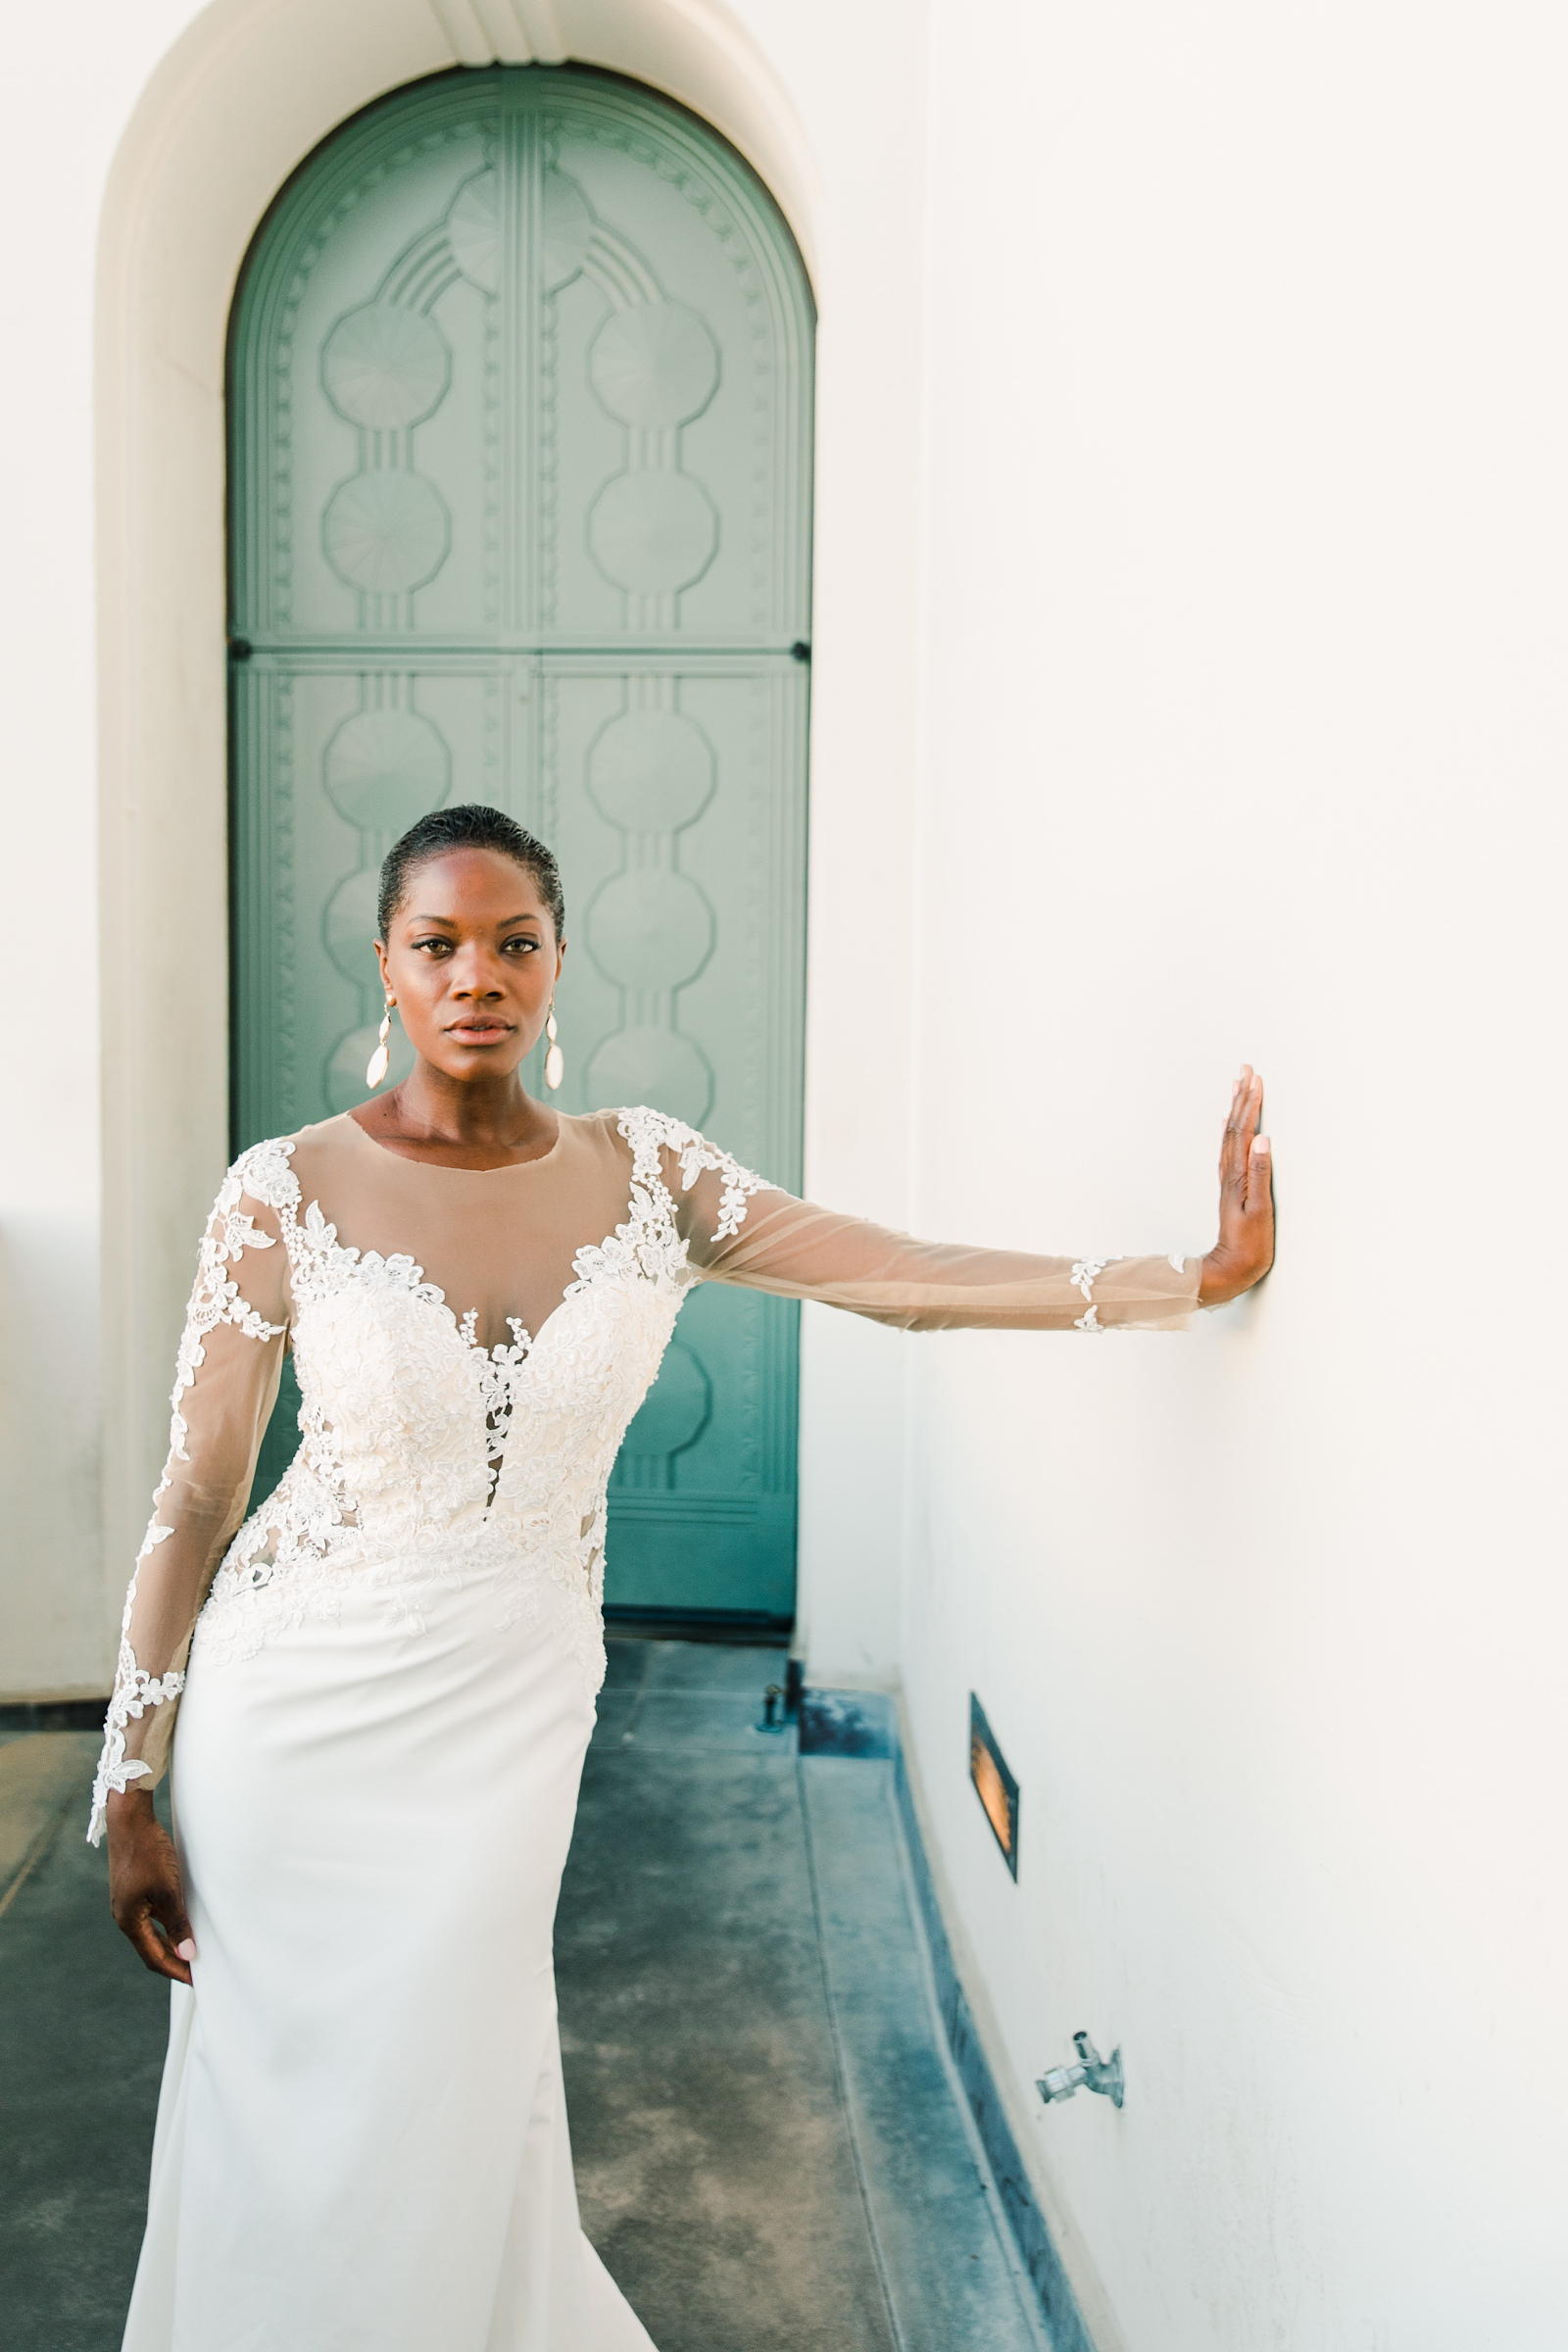 Modern timeless wedding photography at the Griffith Observatory in Los Angeles, California destination wedding photographer, modern bride with long sleeve lace dress, short hair